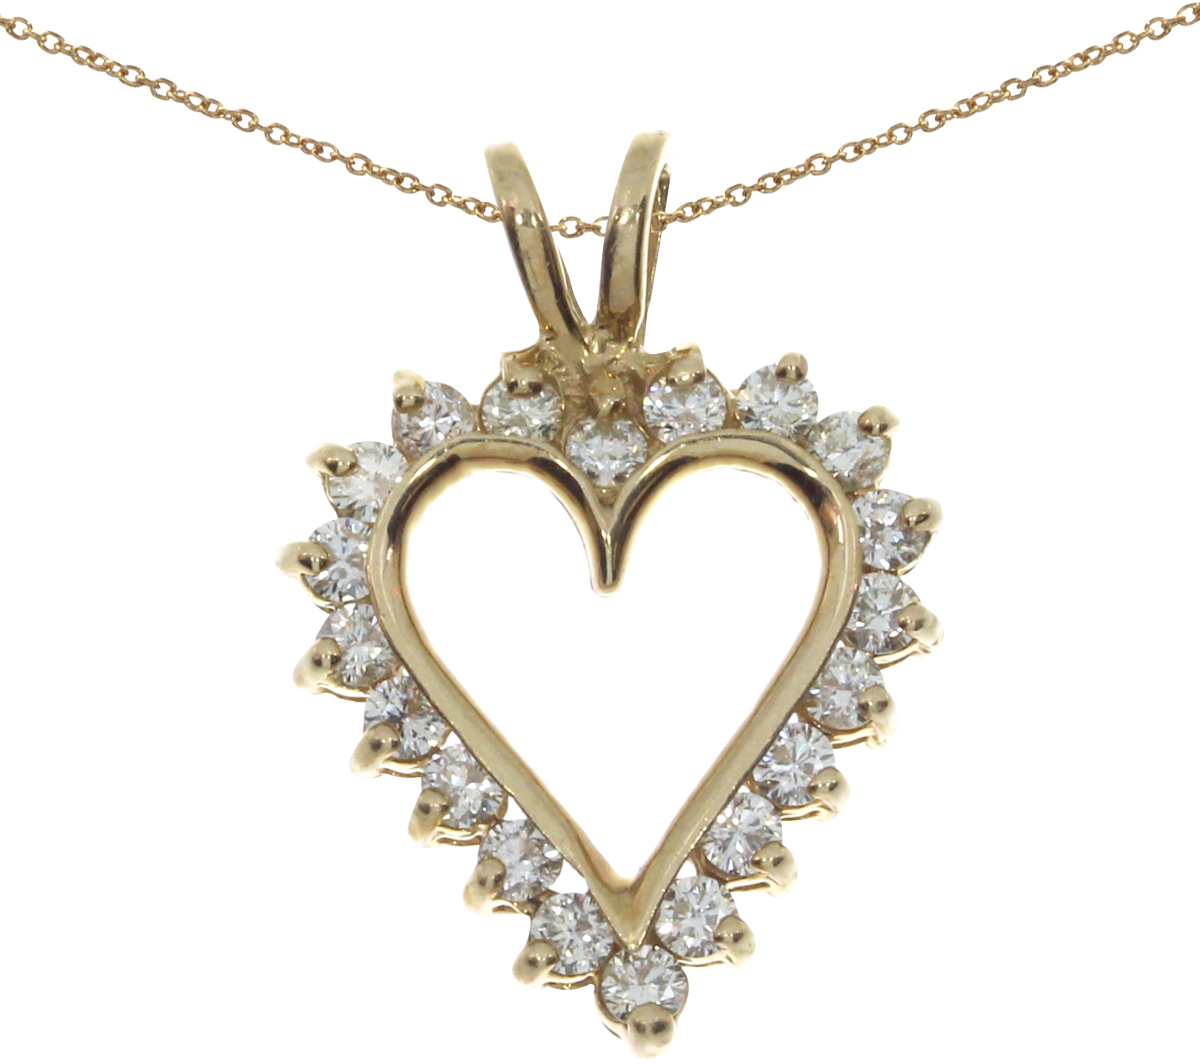 14K Yellow Gold Diamond Heart Pendant (Chain NOT included)